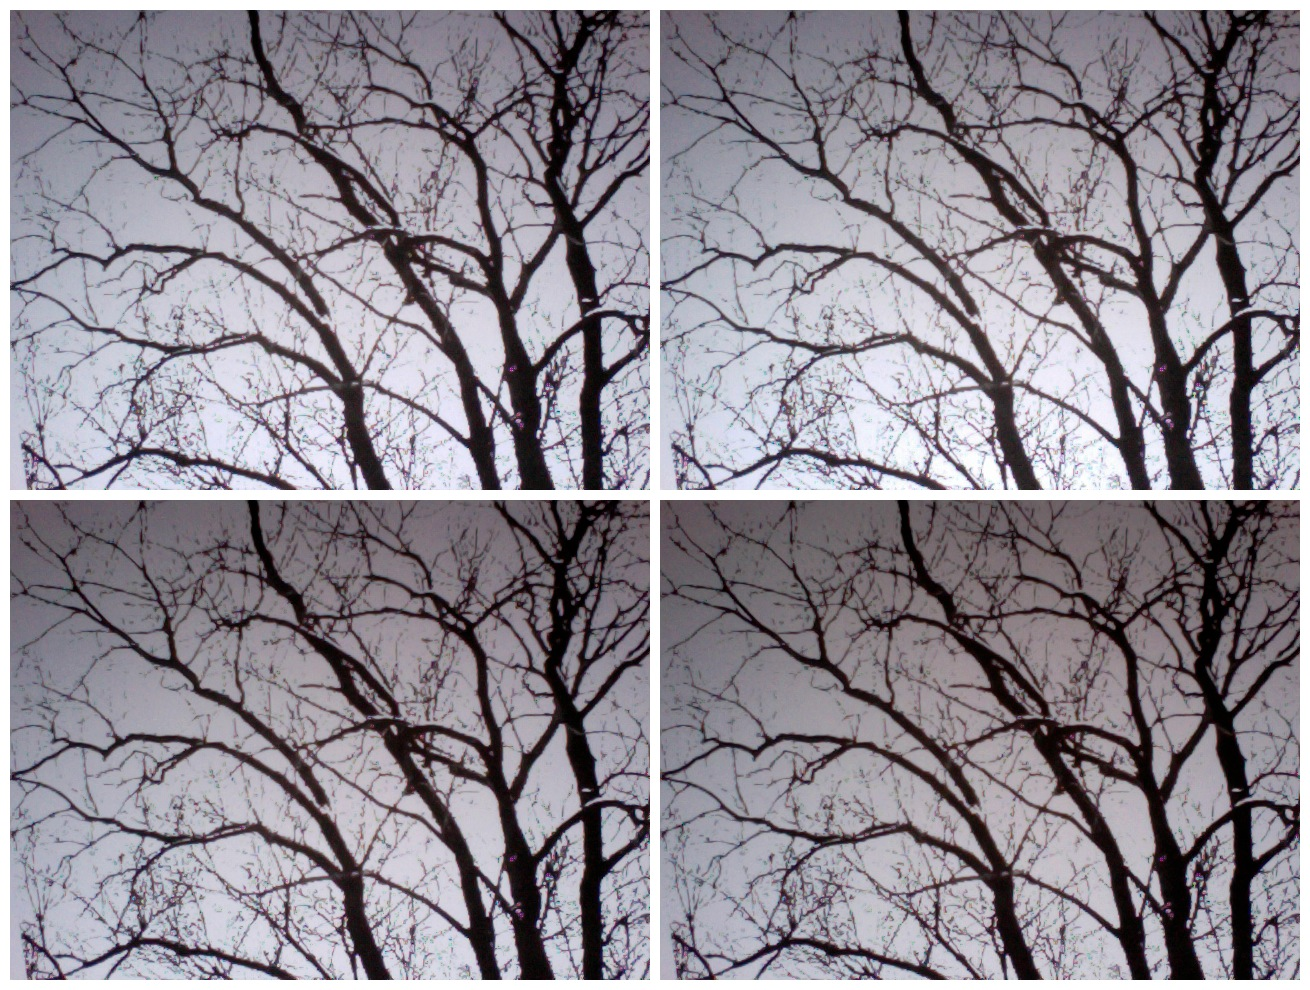 Glimpse of solace: Branches